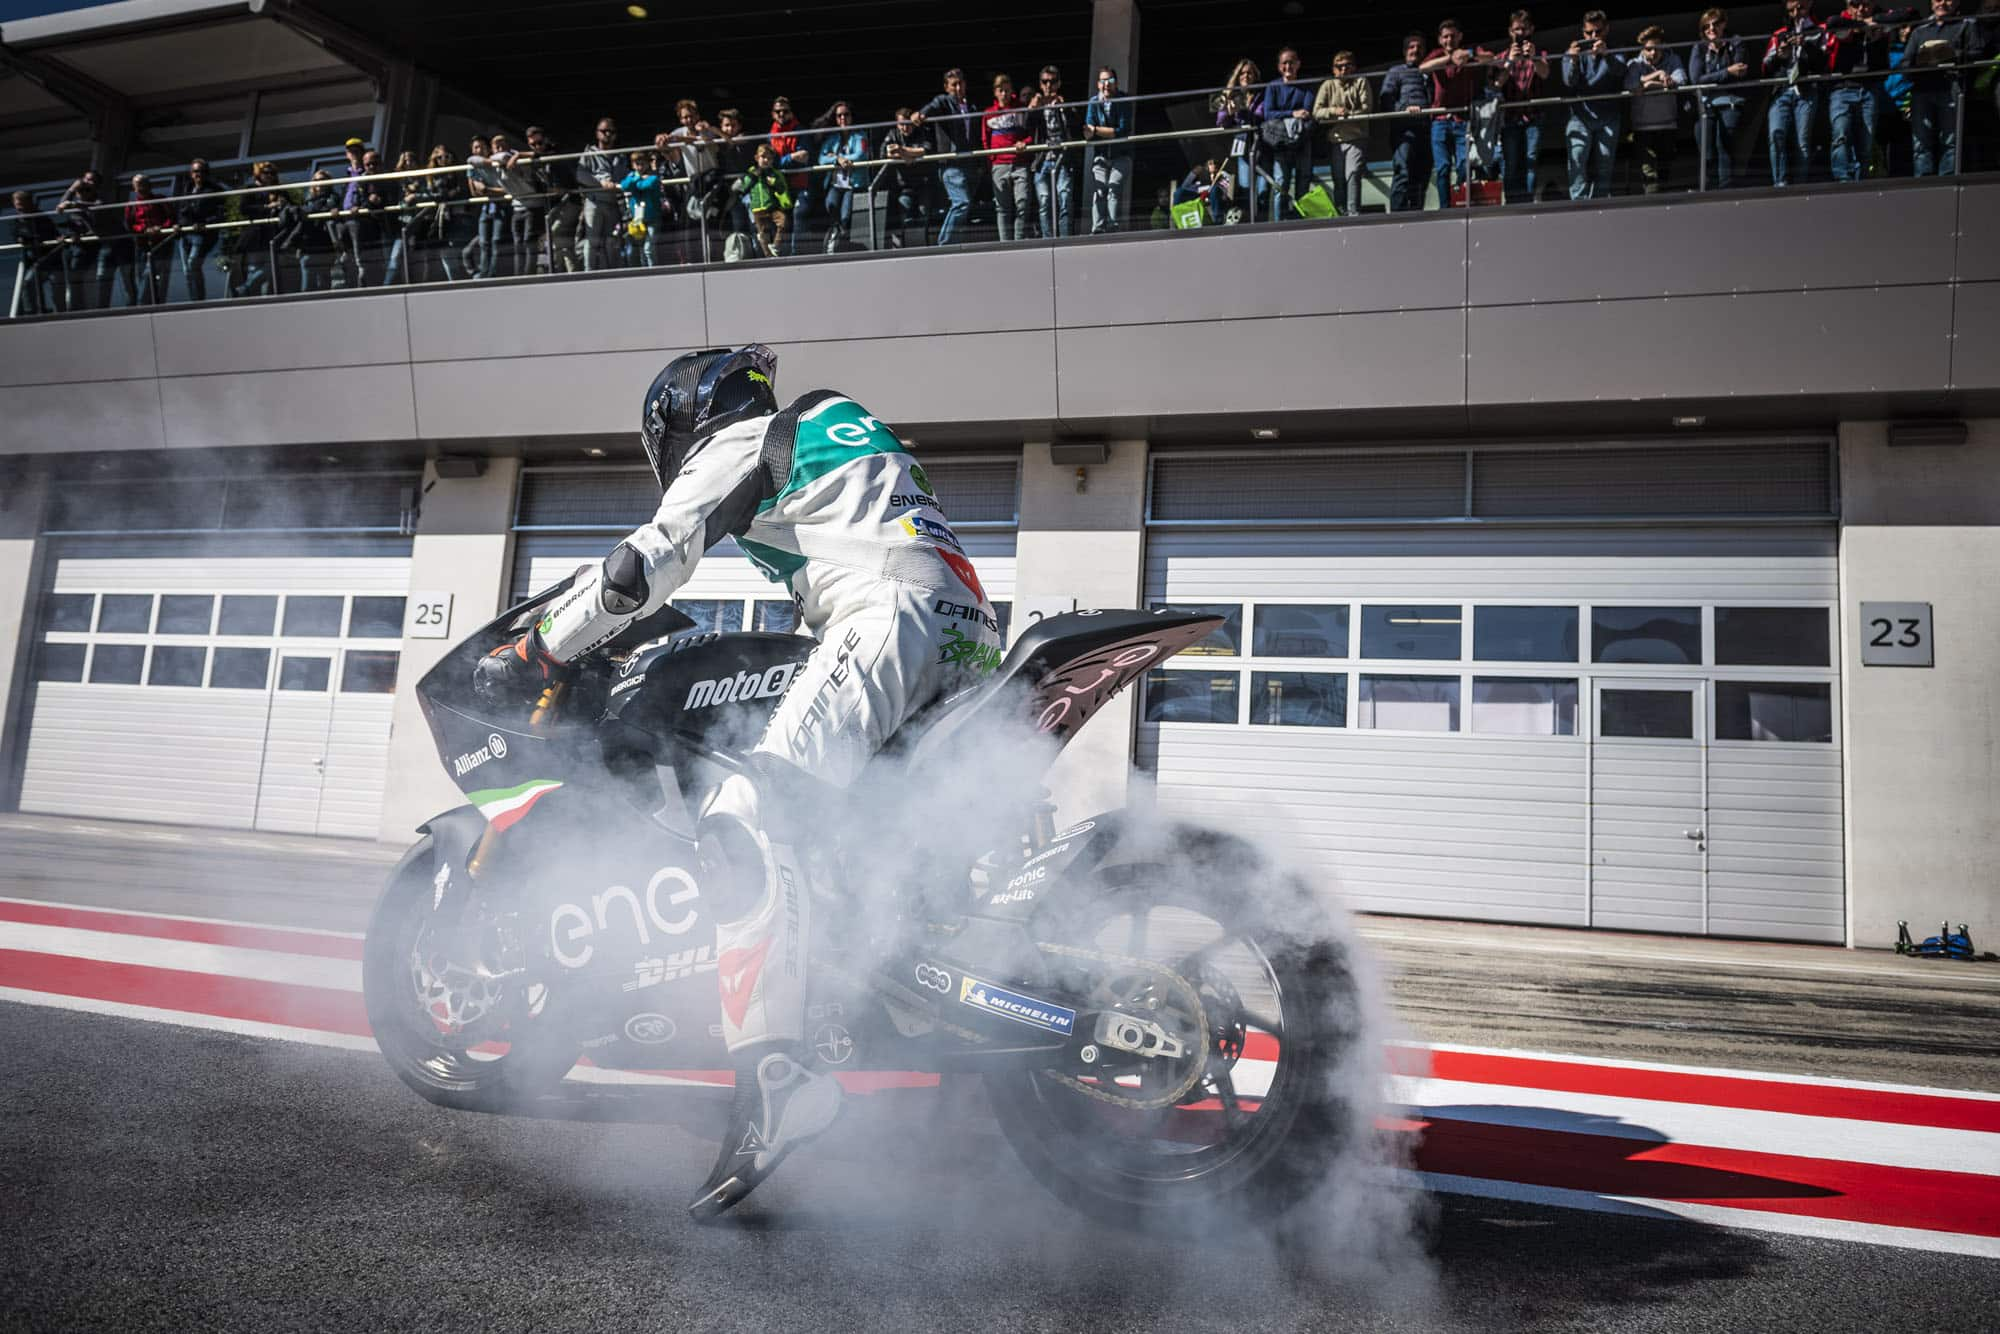 E-MOBILITY PLAY DAYS 2018 LOCKTEN 39.500 BESUCHER AN! » E Mobility Play Days 2018 MotoE © Philip Platzer Red Bull Content Pool